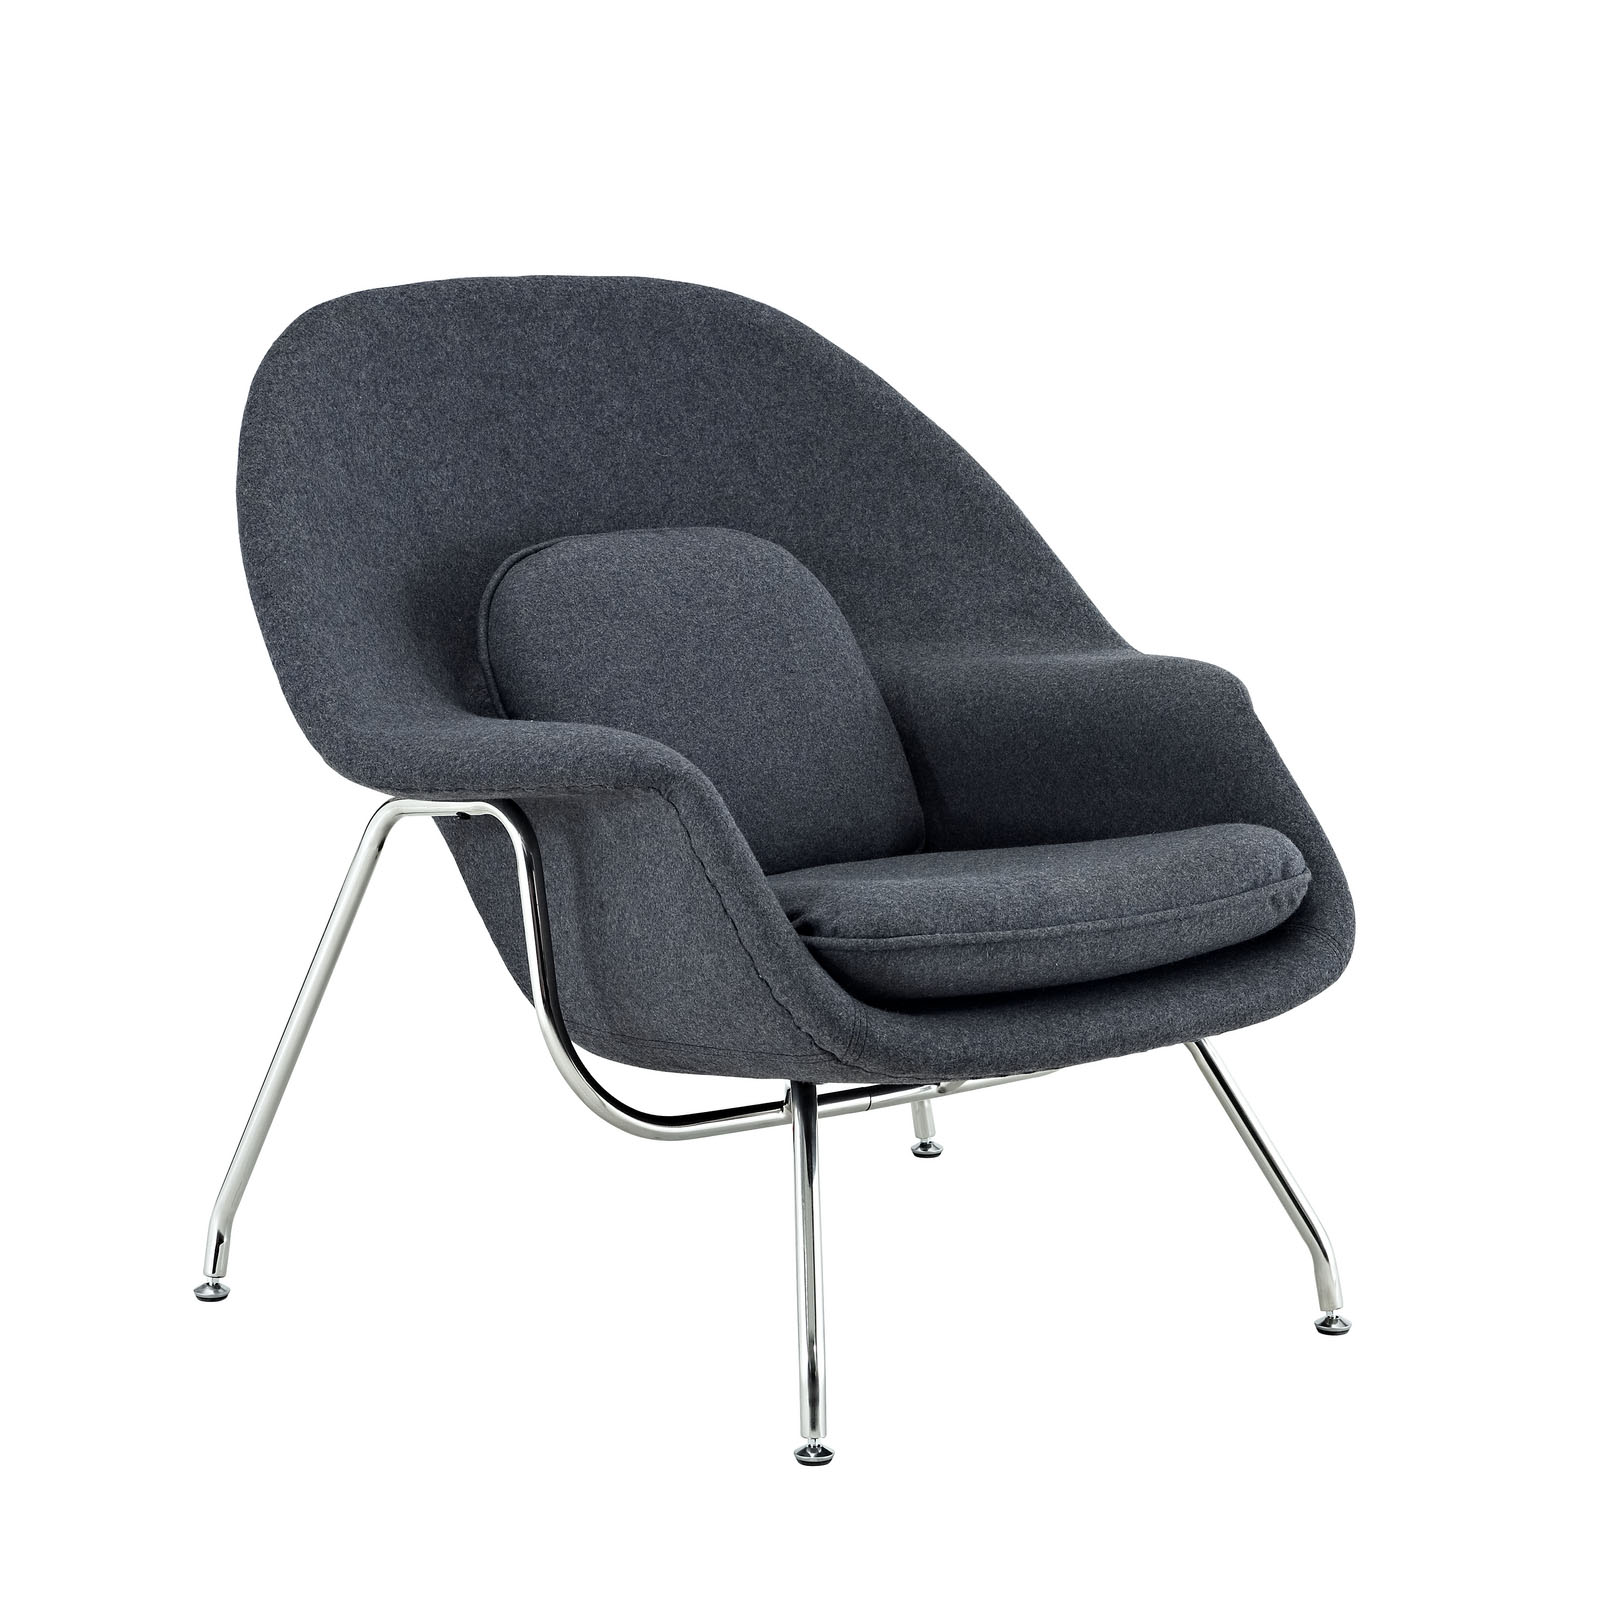 grey lounge chair finishing touches covers essex eero saarinen womb rentals event furniture rental